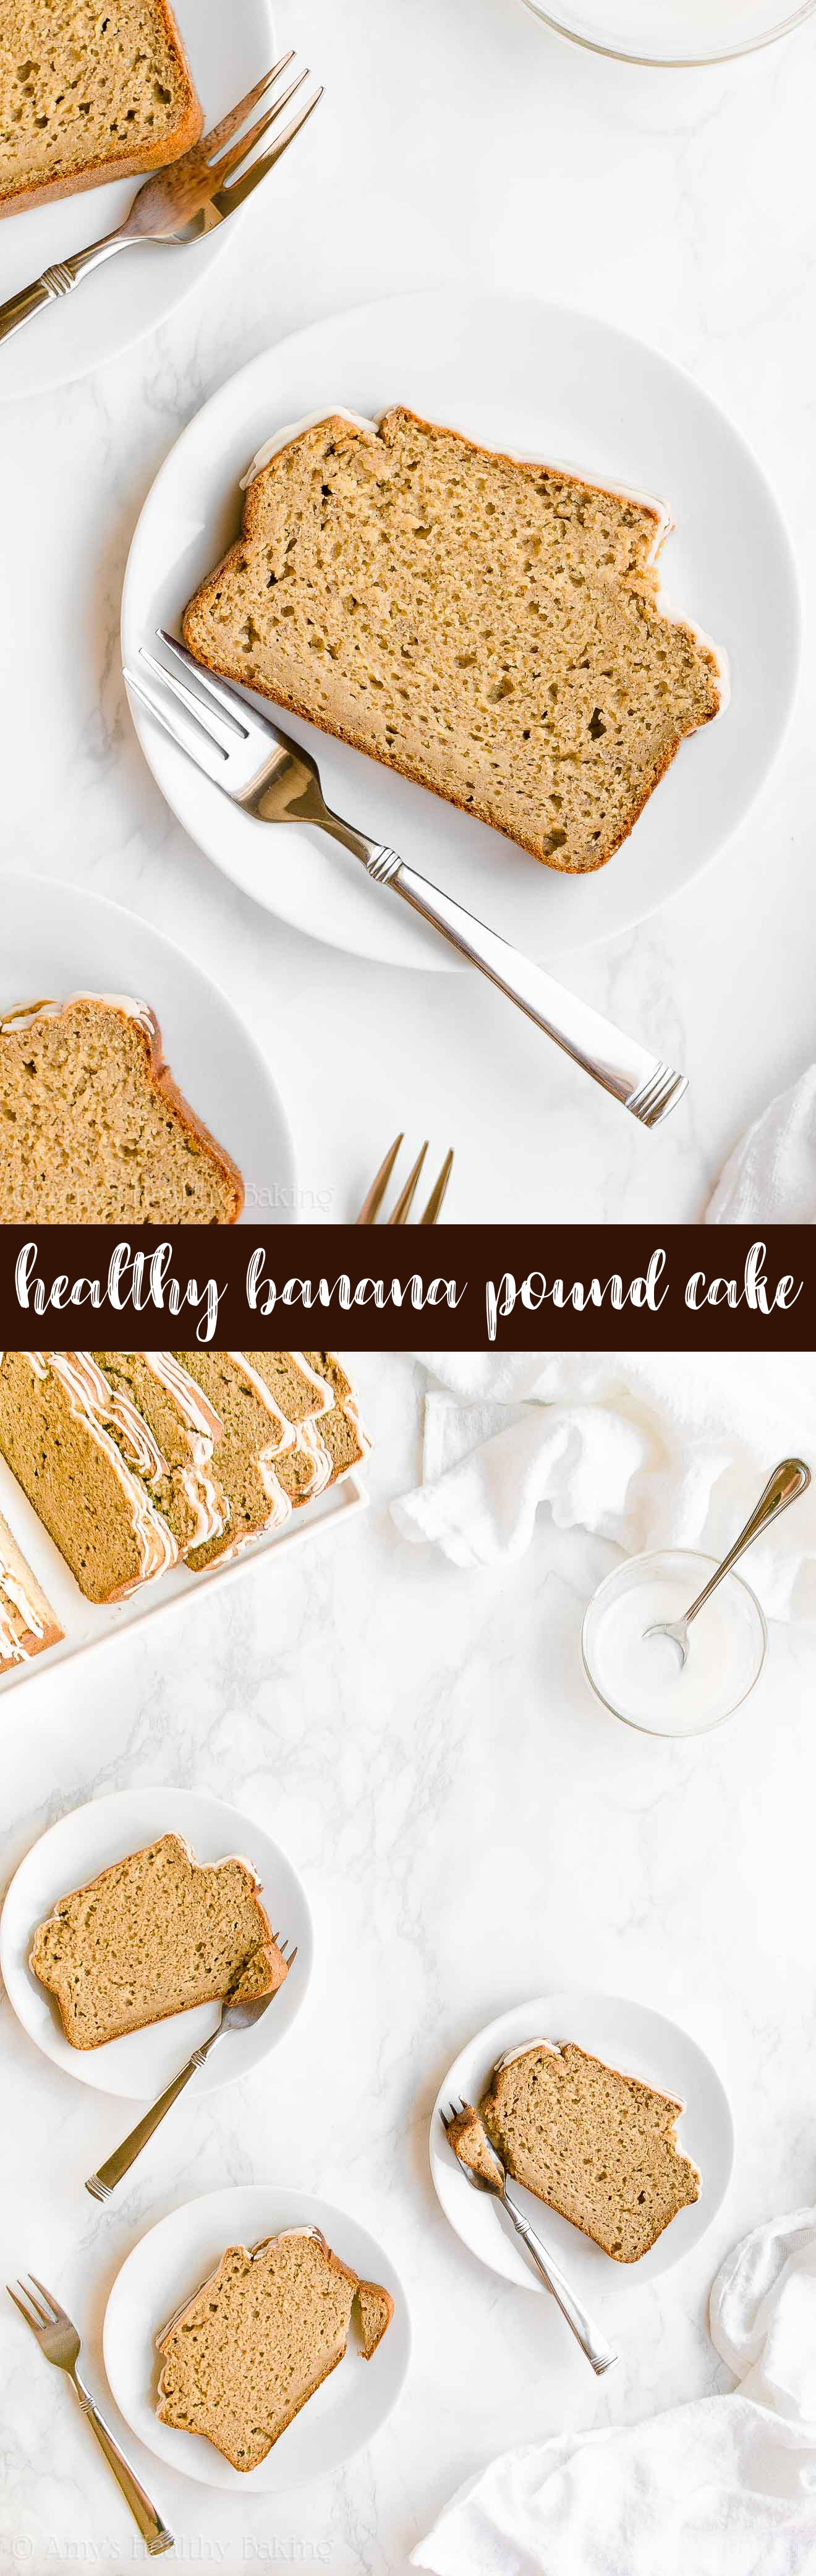 Best Ever Easy Healthy Low Calorie Greek Yogurt Banana Pound Cake